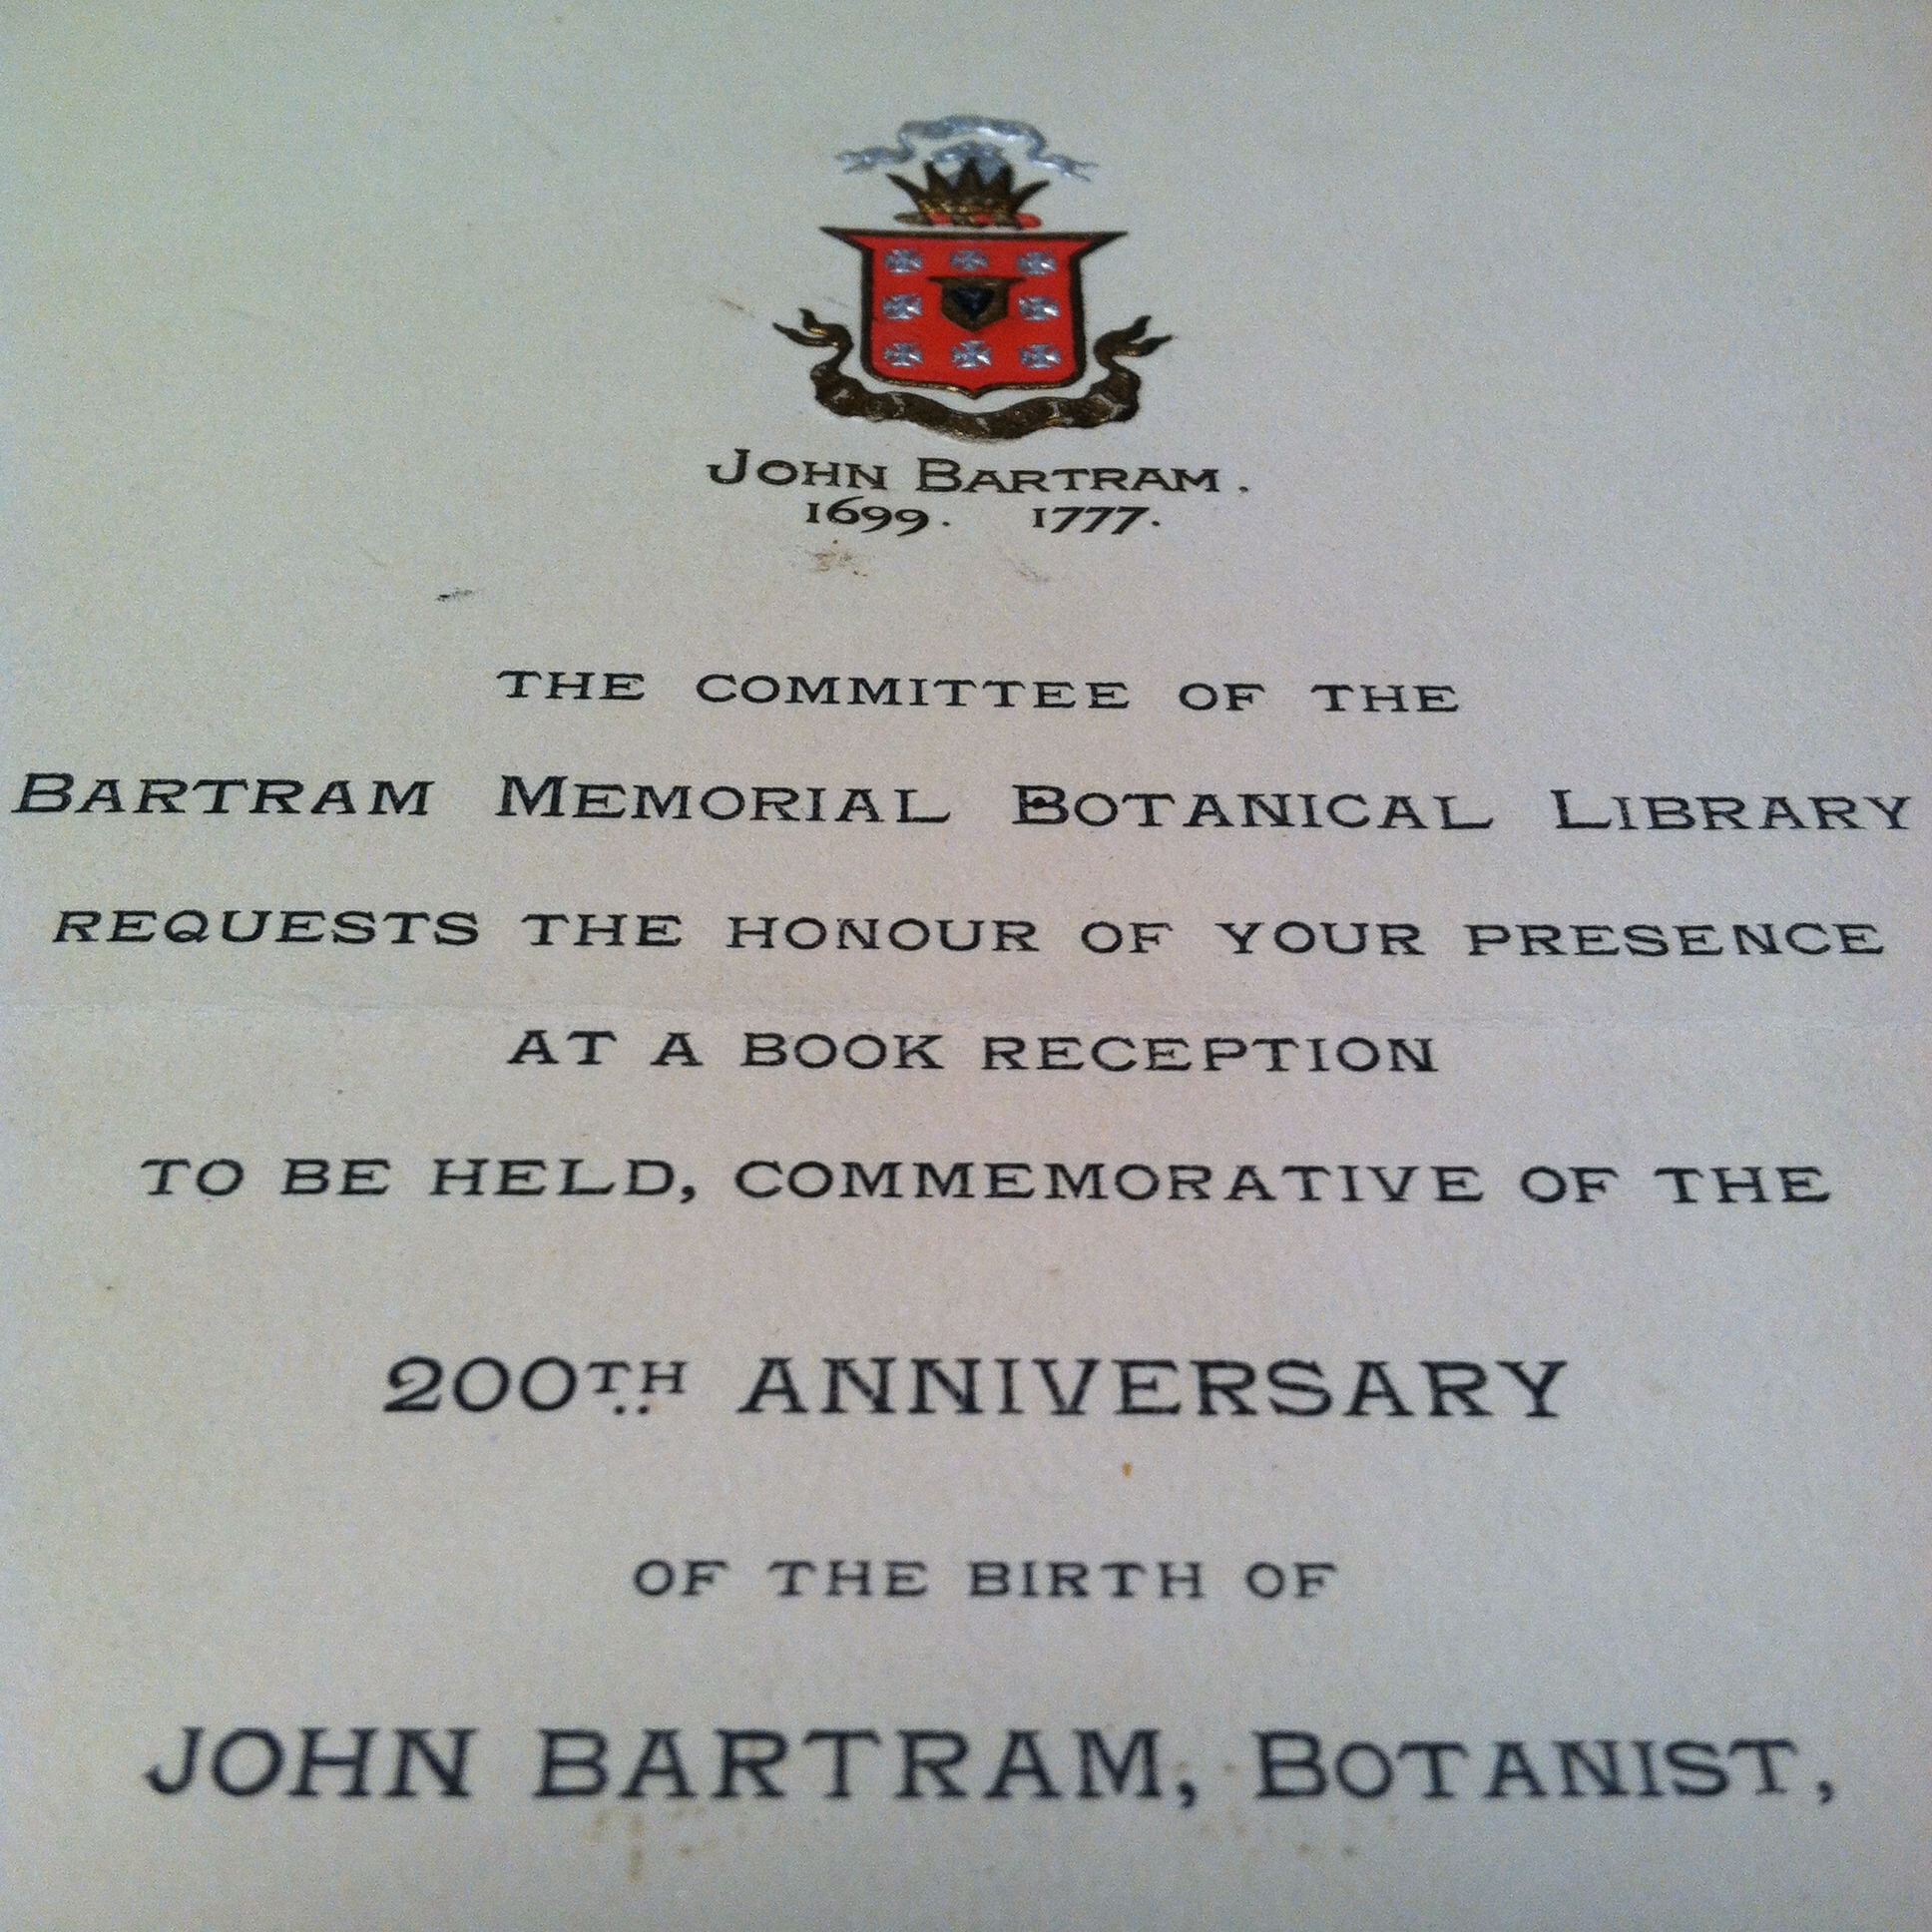 John bartram association records relating to its foundation and an invitation card to john bartrams 200th anniversary 1899 stopboris Choice Image